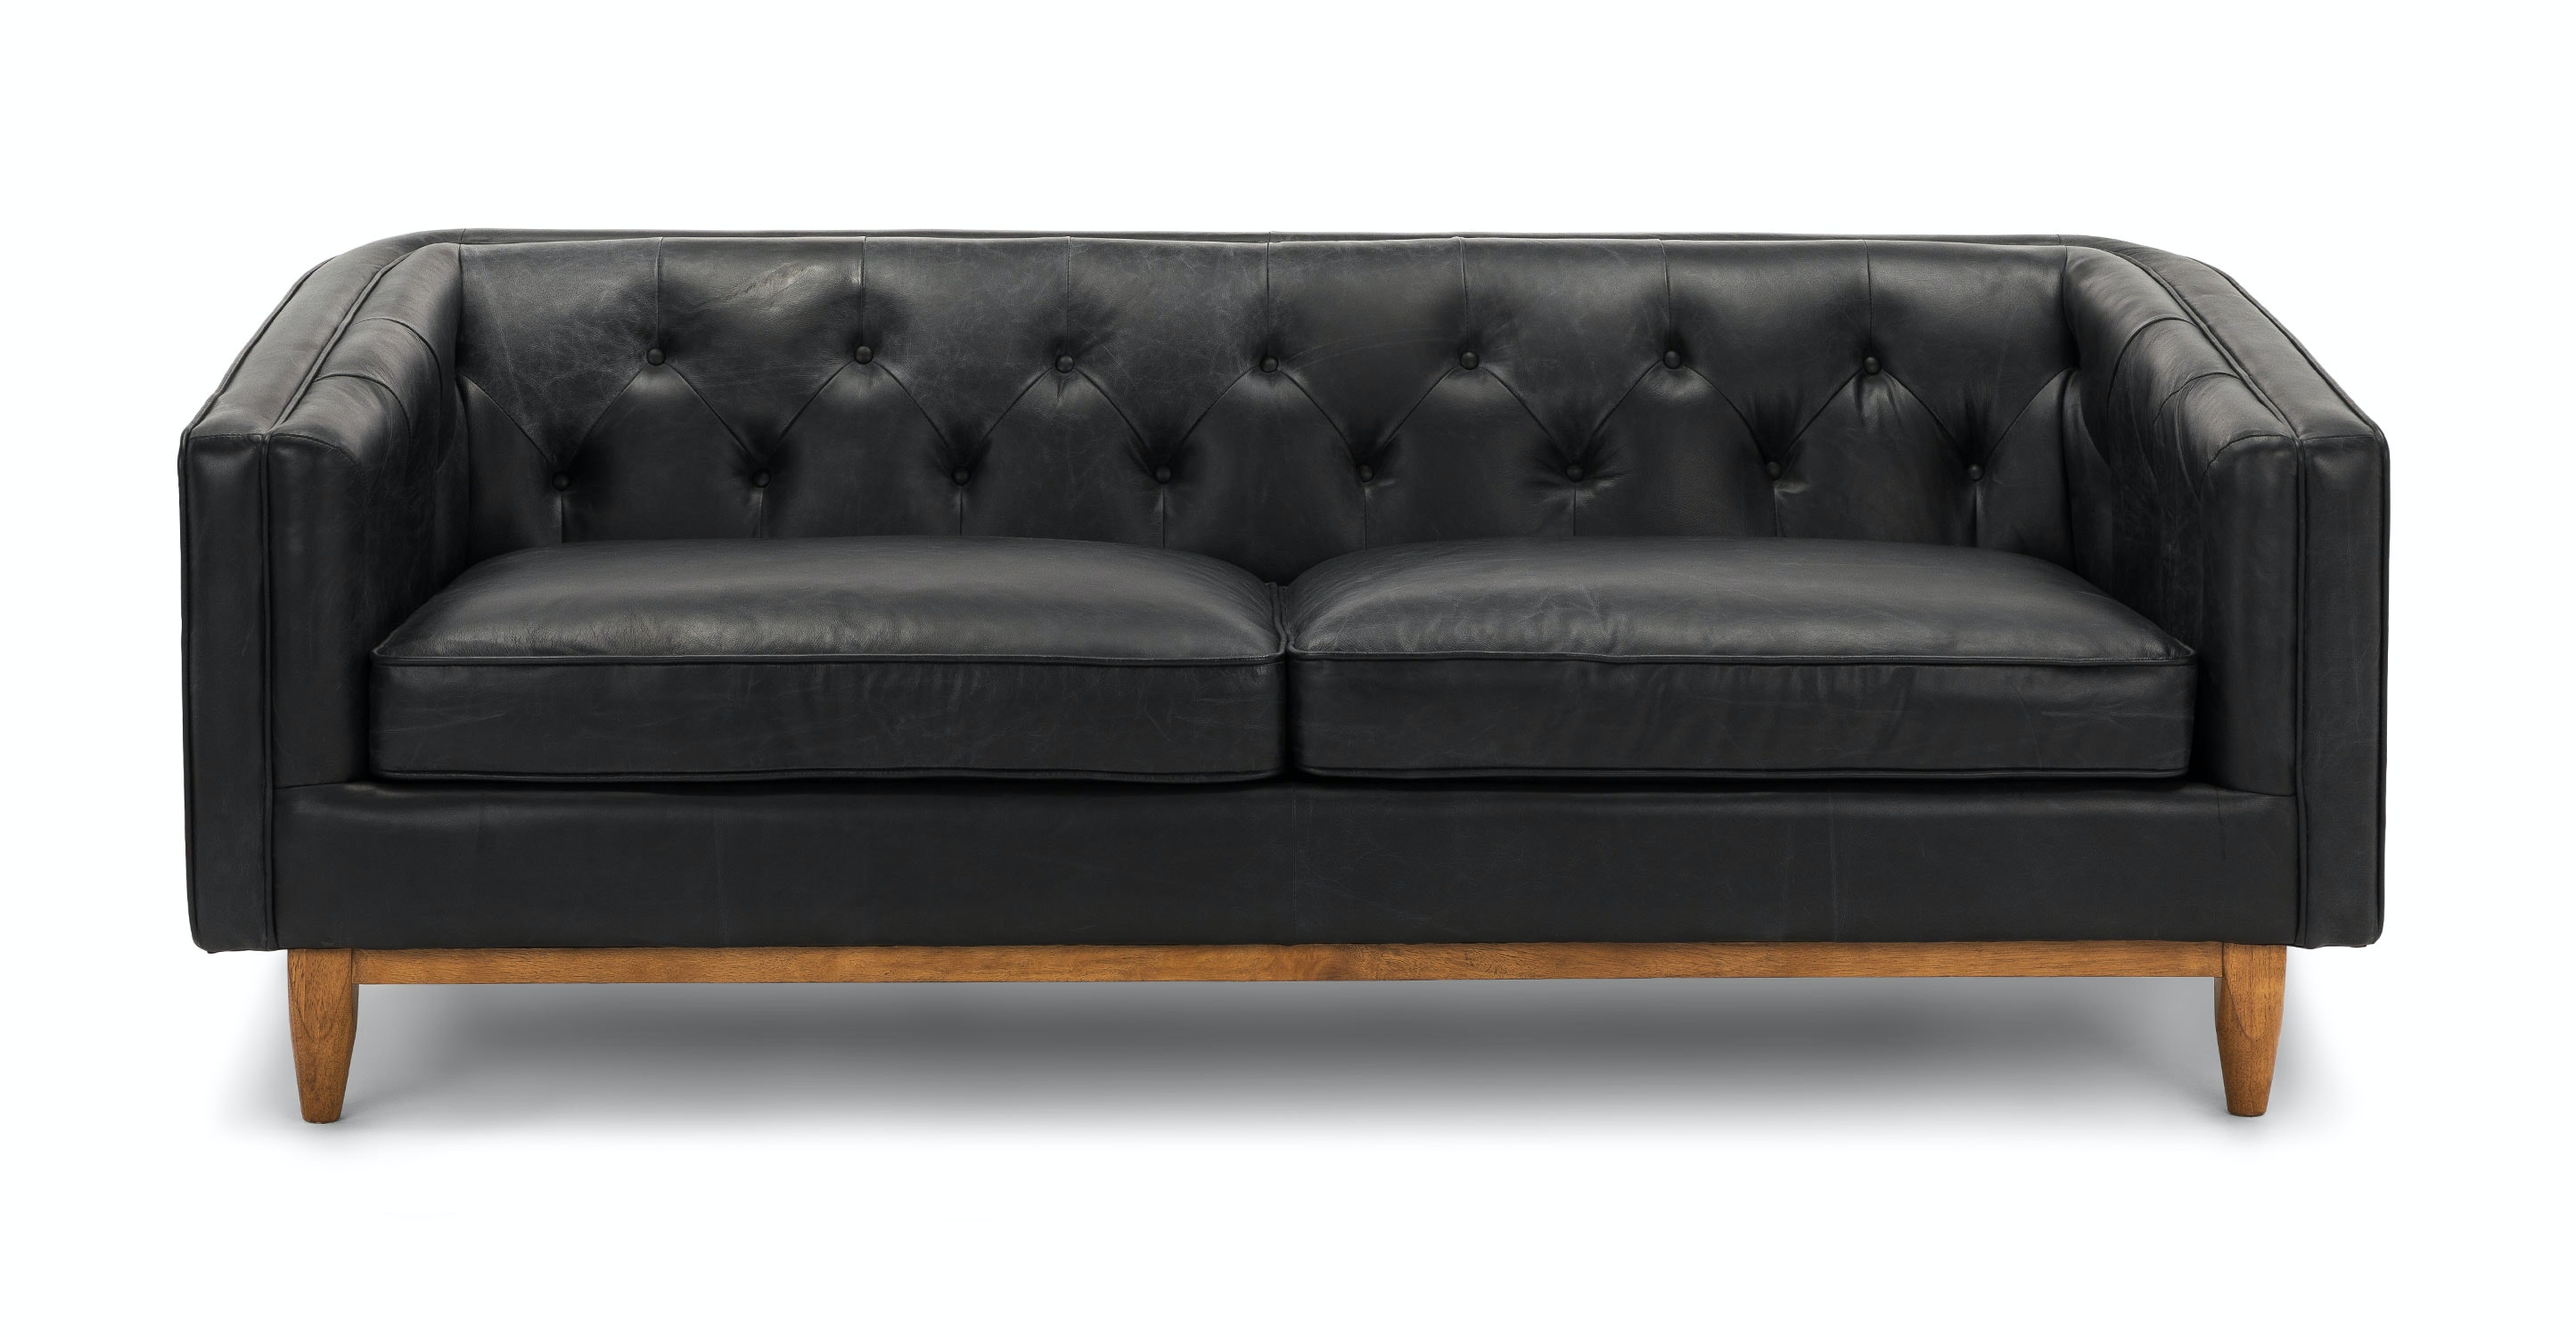 Alcott Oxford Black Sofa